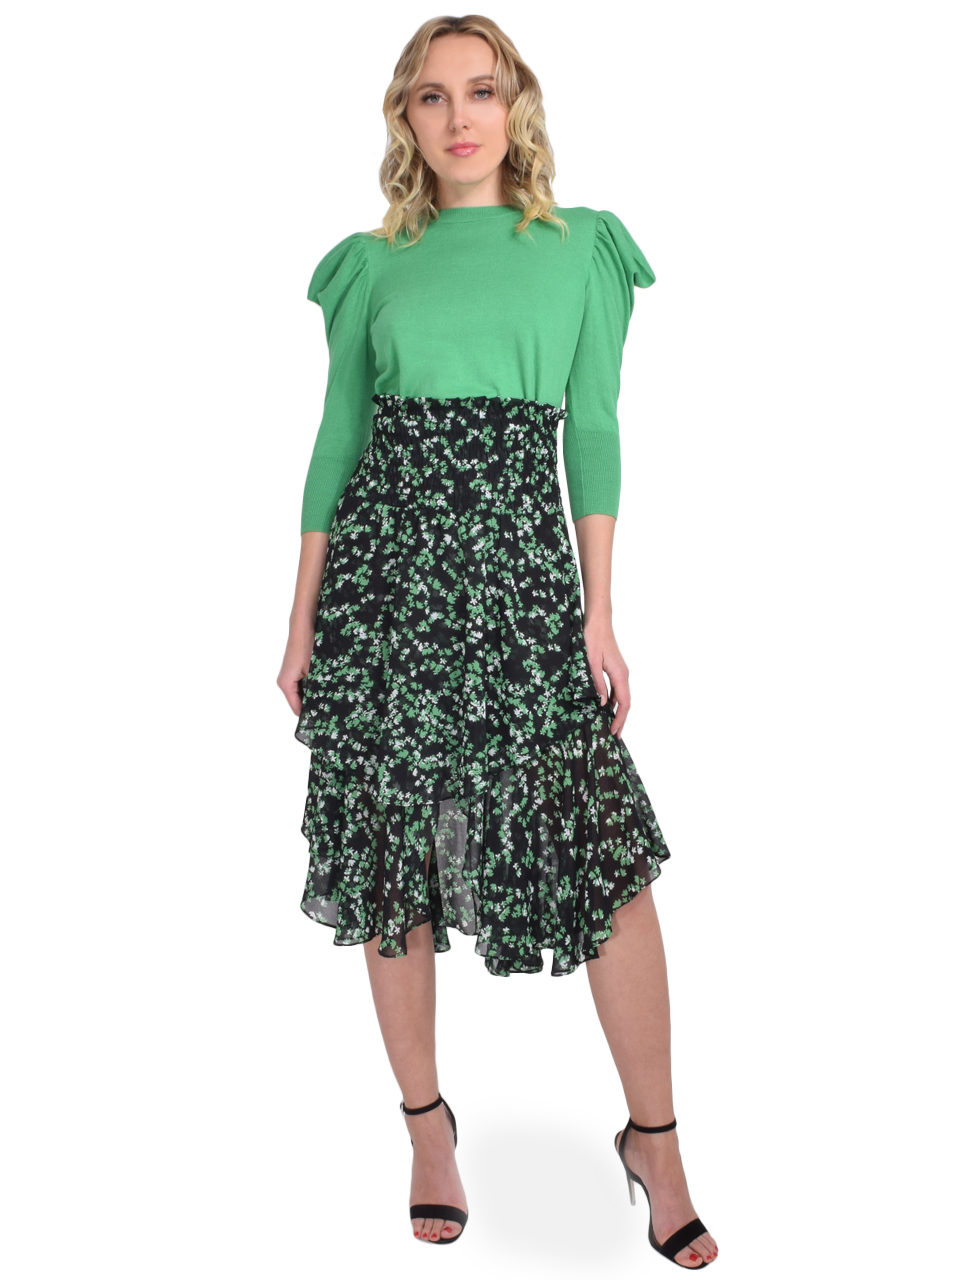 MISA Sonora Midi Skirt in Green